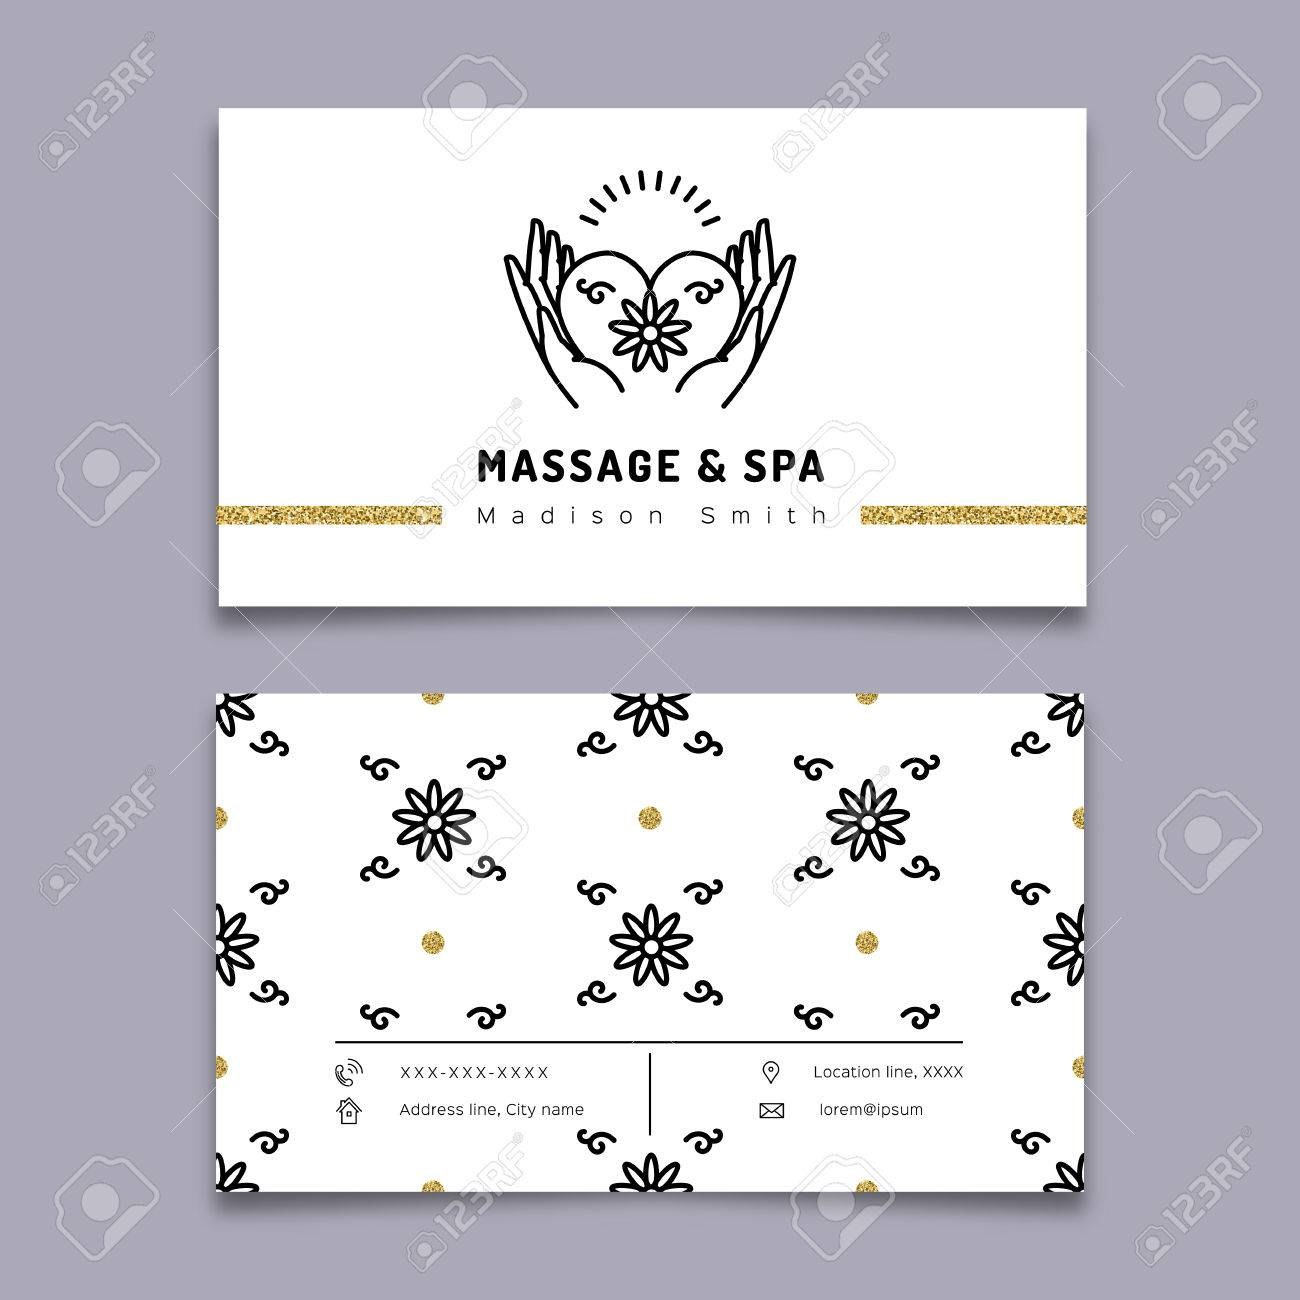 Vector Massage And Spa Therapy Business Card Template Trendy Intended For Massage Therapy Business Card Templates